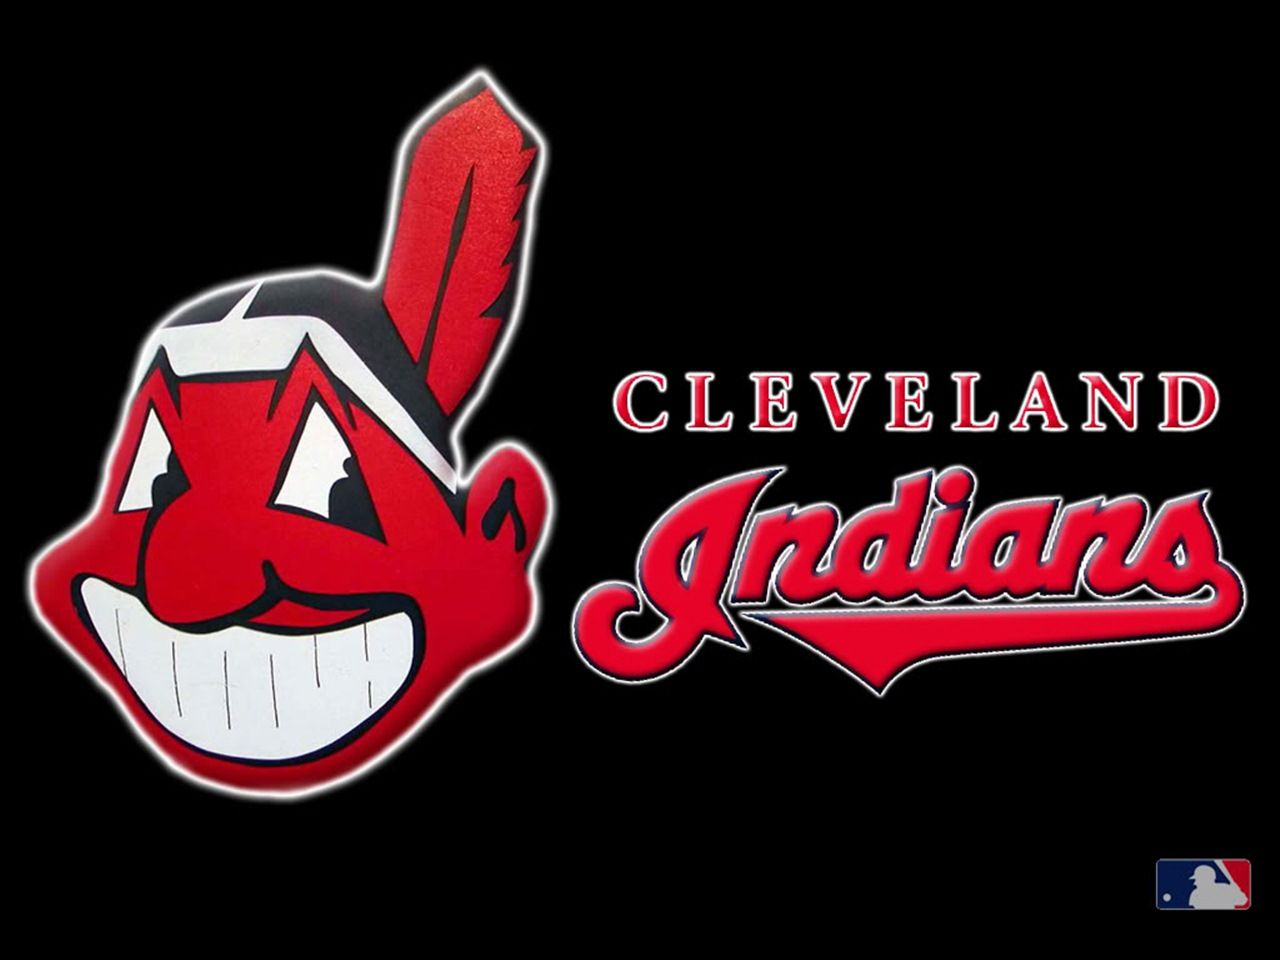 Cleveland Indians Wallpapers - Top Free Cleveland Indians ...